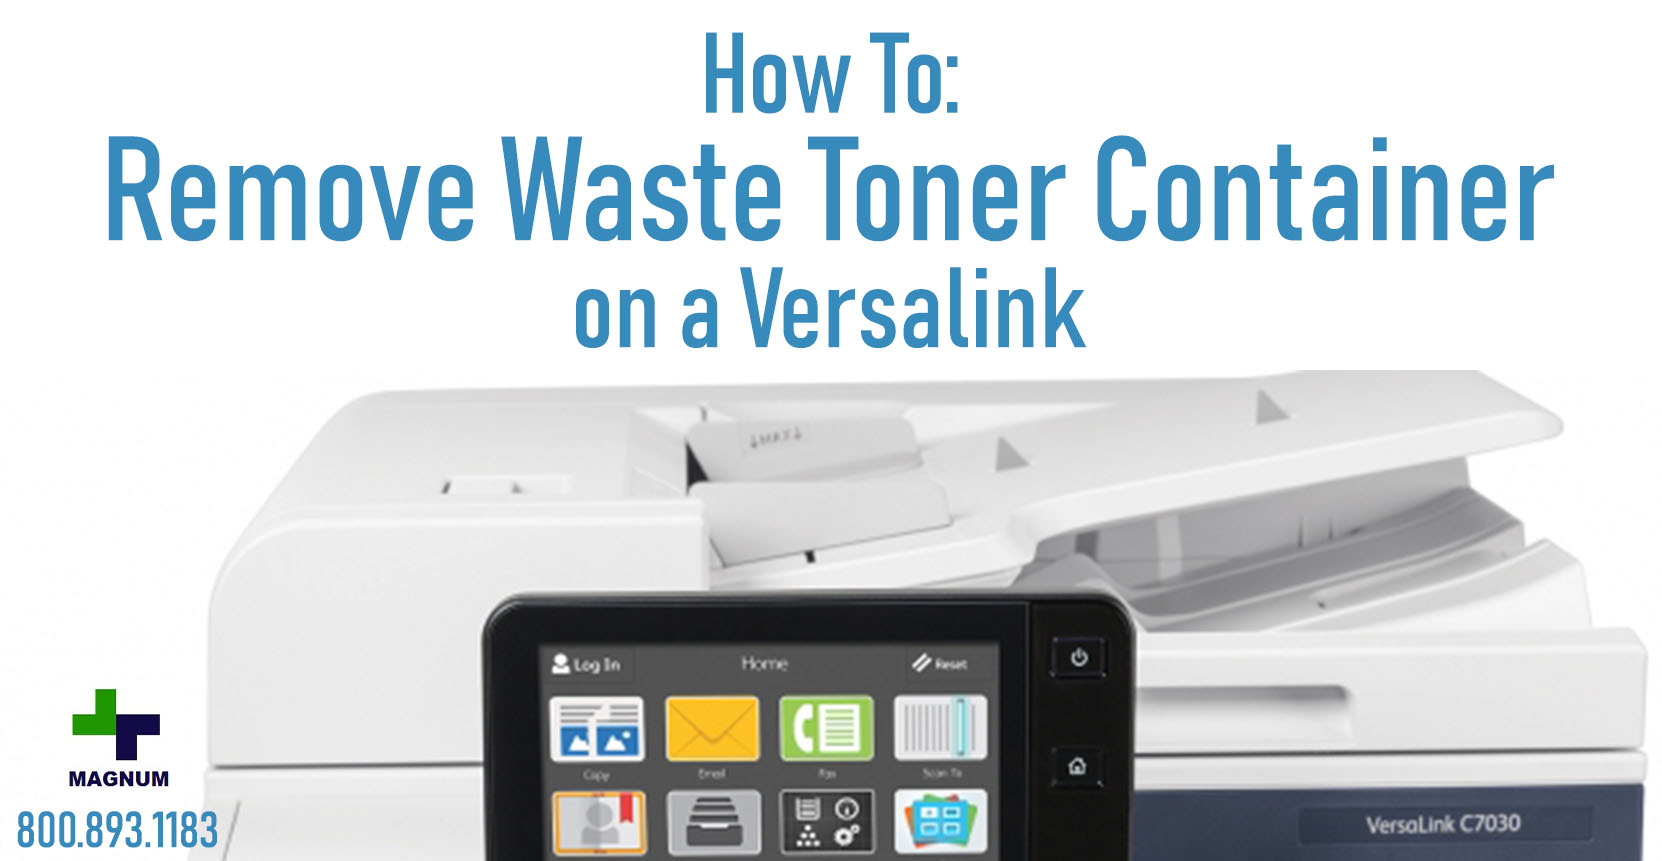 How To Remove Waste Toner Container from Versalink C7020/C7025/C7030